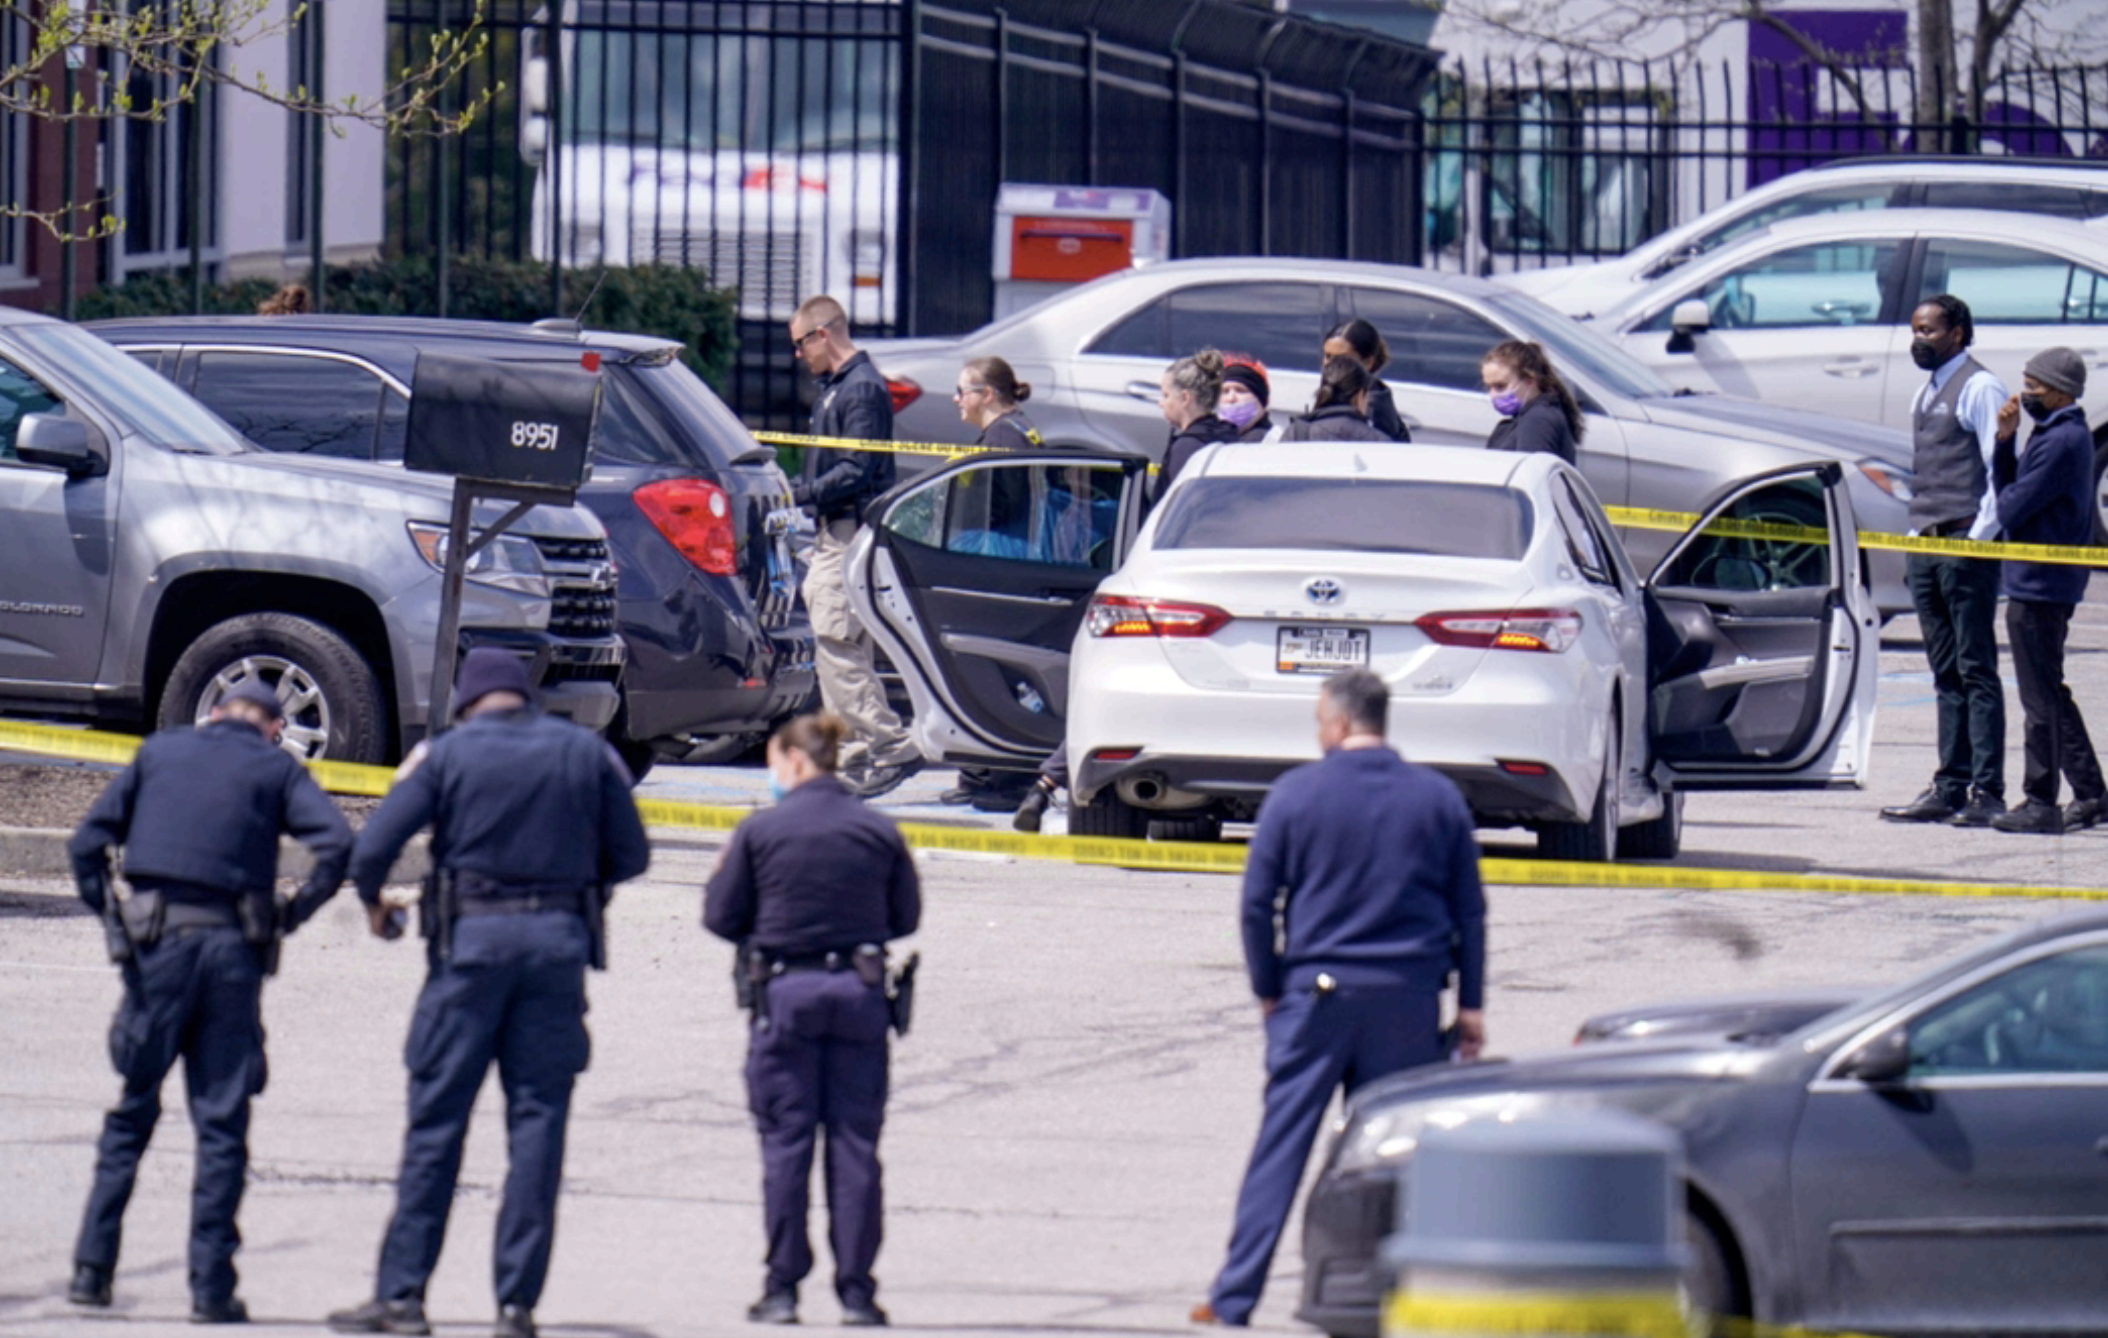 US mass shooter who killed 8 people at FedEx was a former employee - News